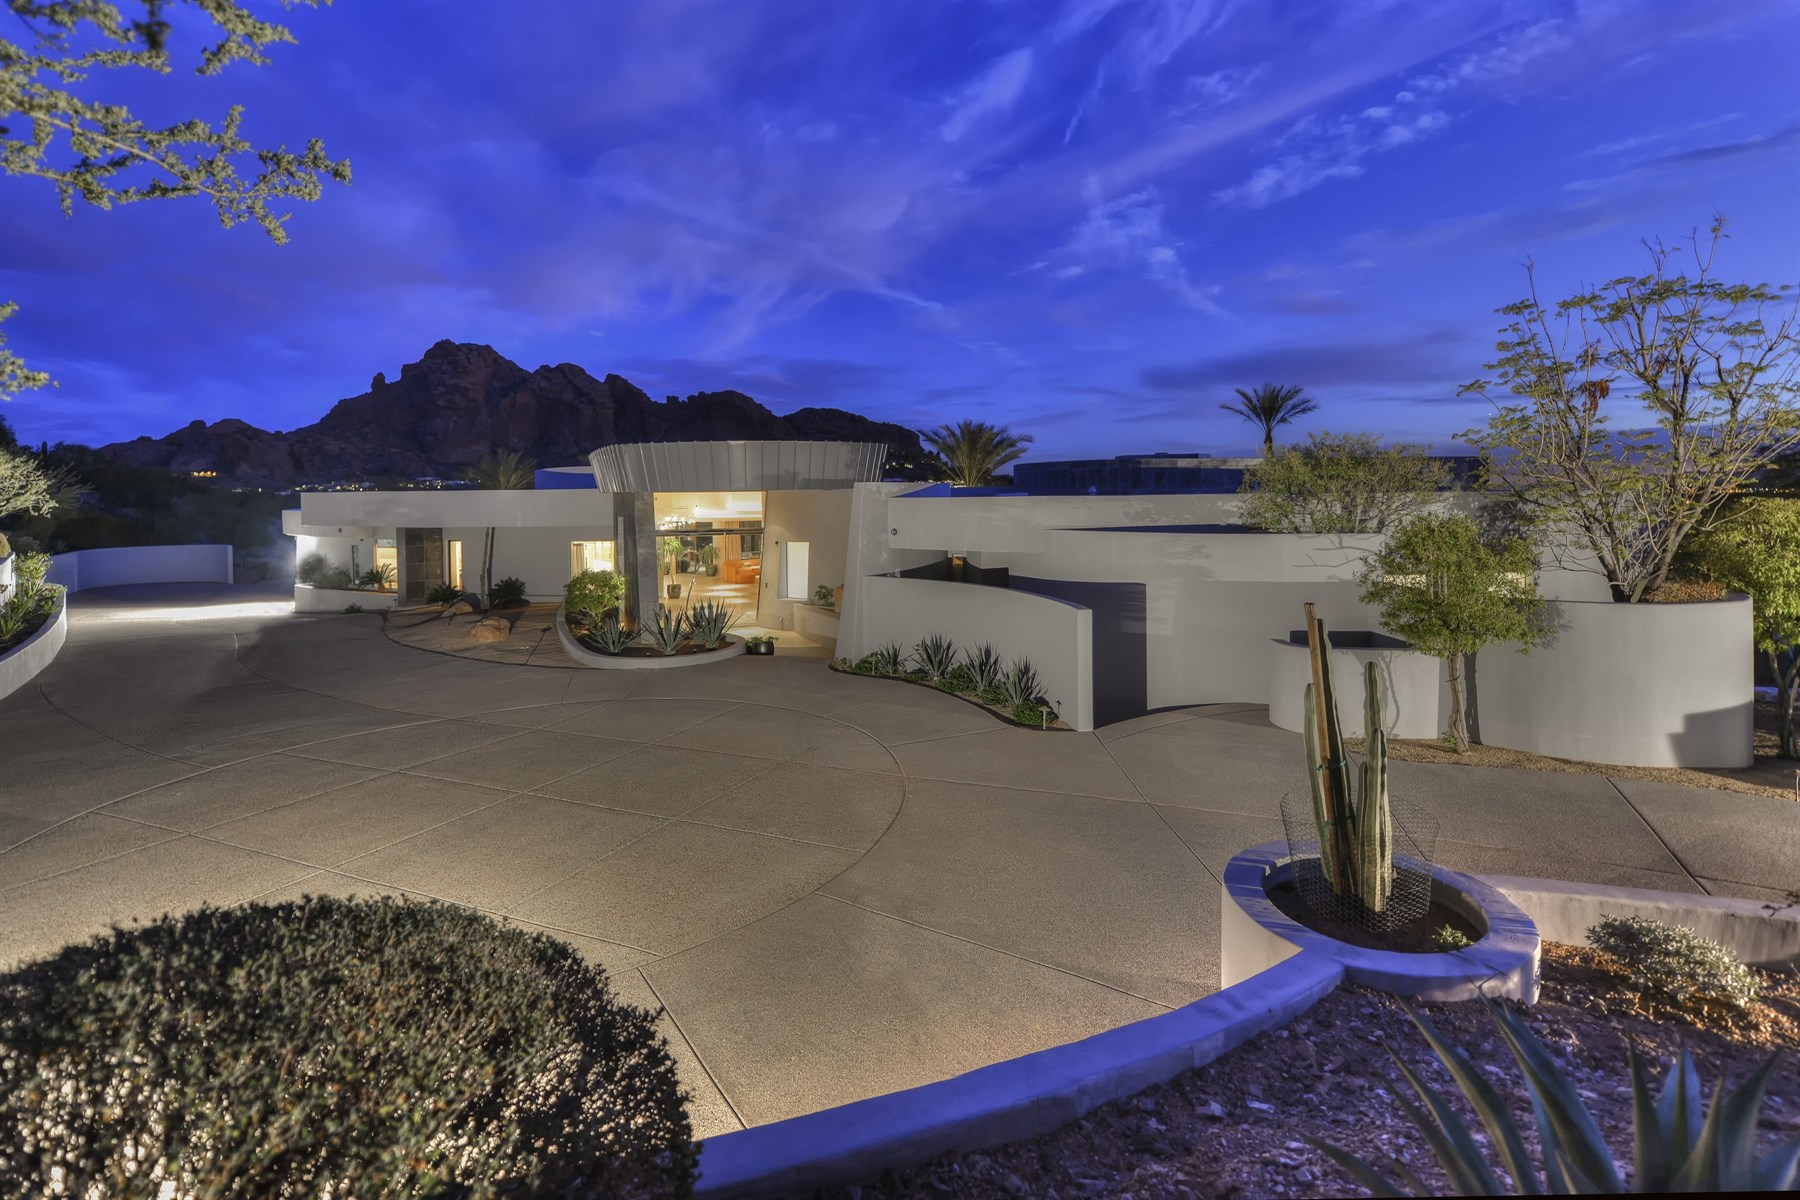 Villa per Vendita alle ore Breathtaking Custom Contemporary Includes Holistic Views Of The Praying Monk 6021 N 44th Street Paradise Valley, Arizona, 85253 Stati Uniti